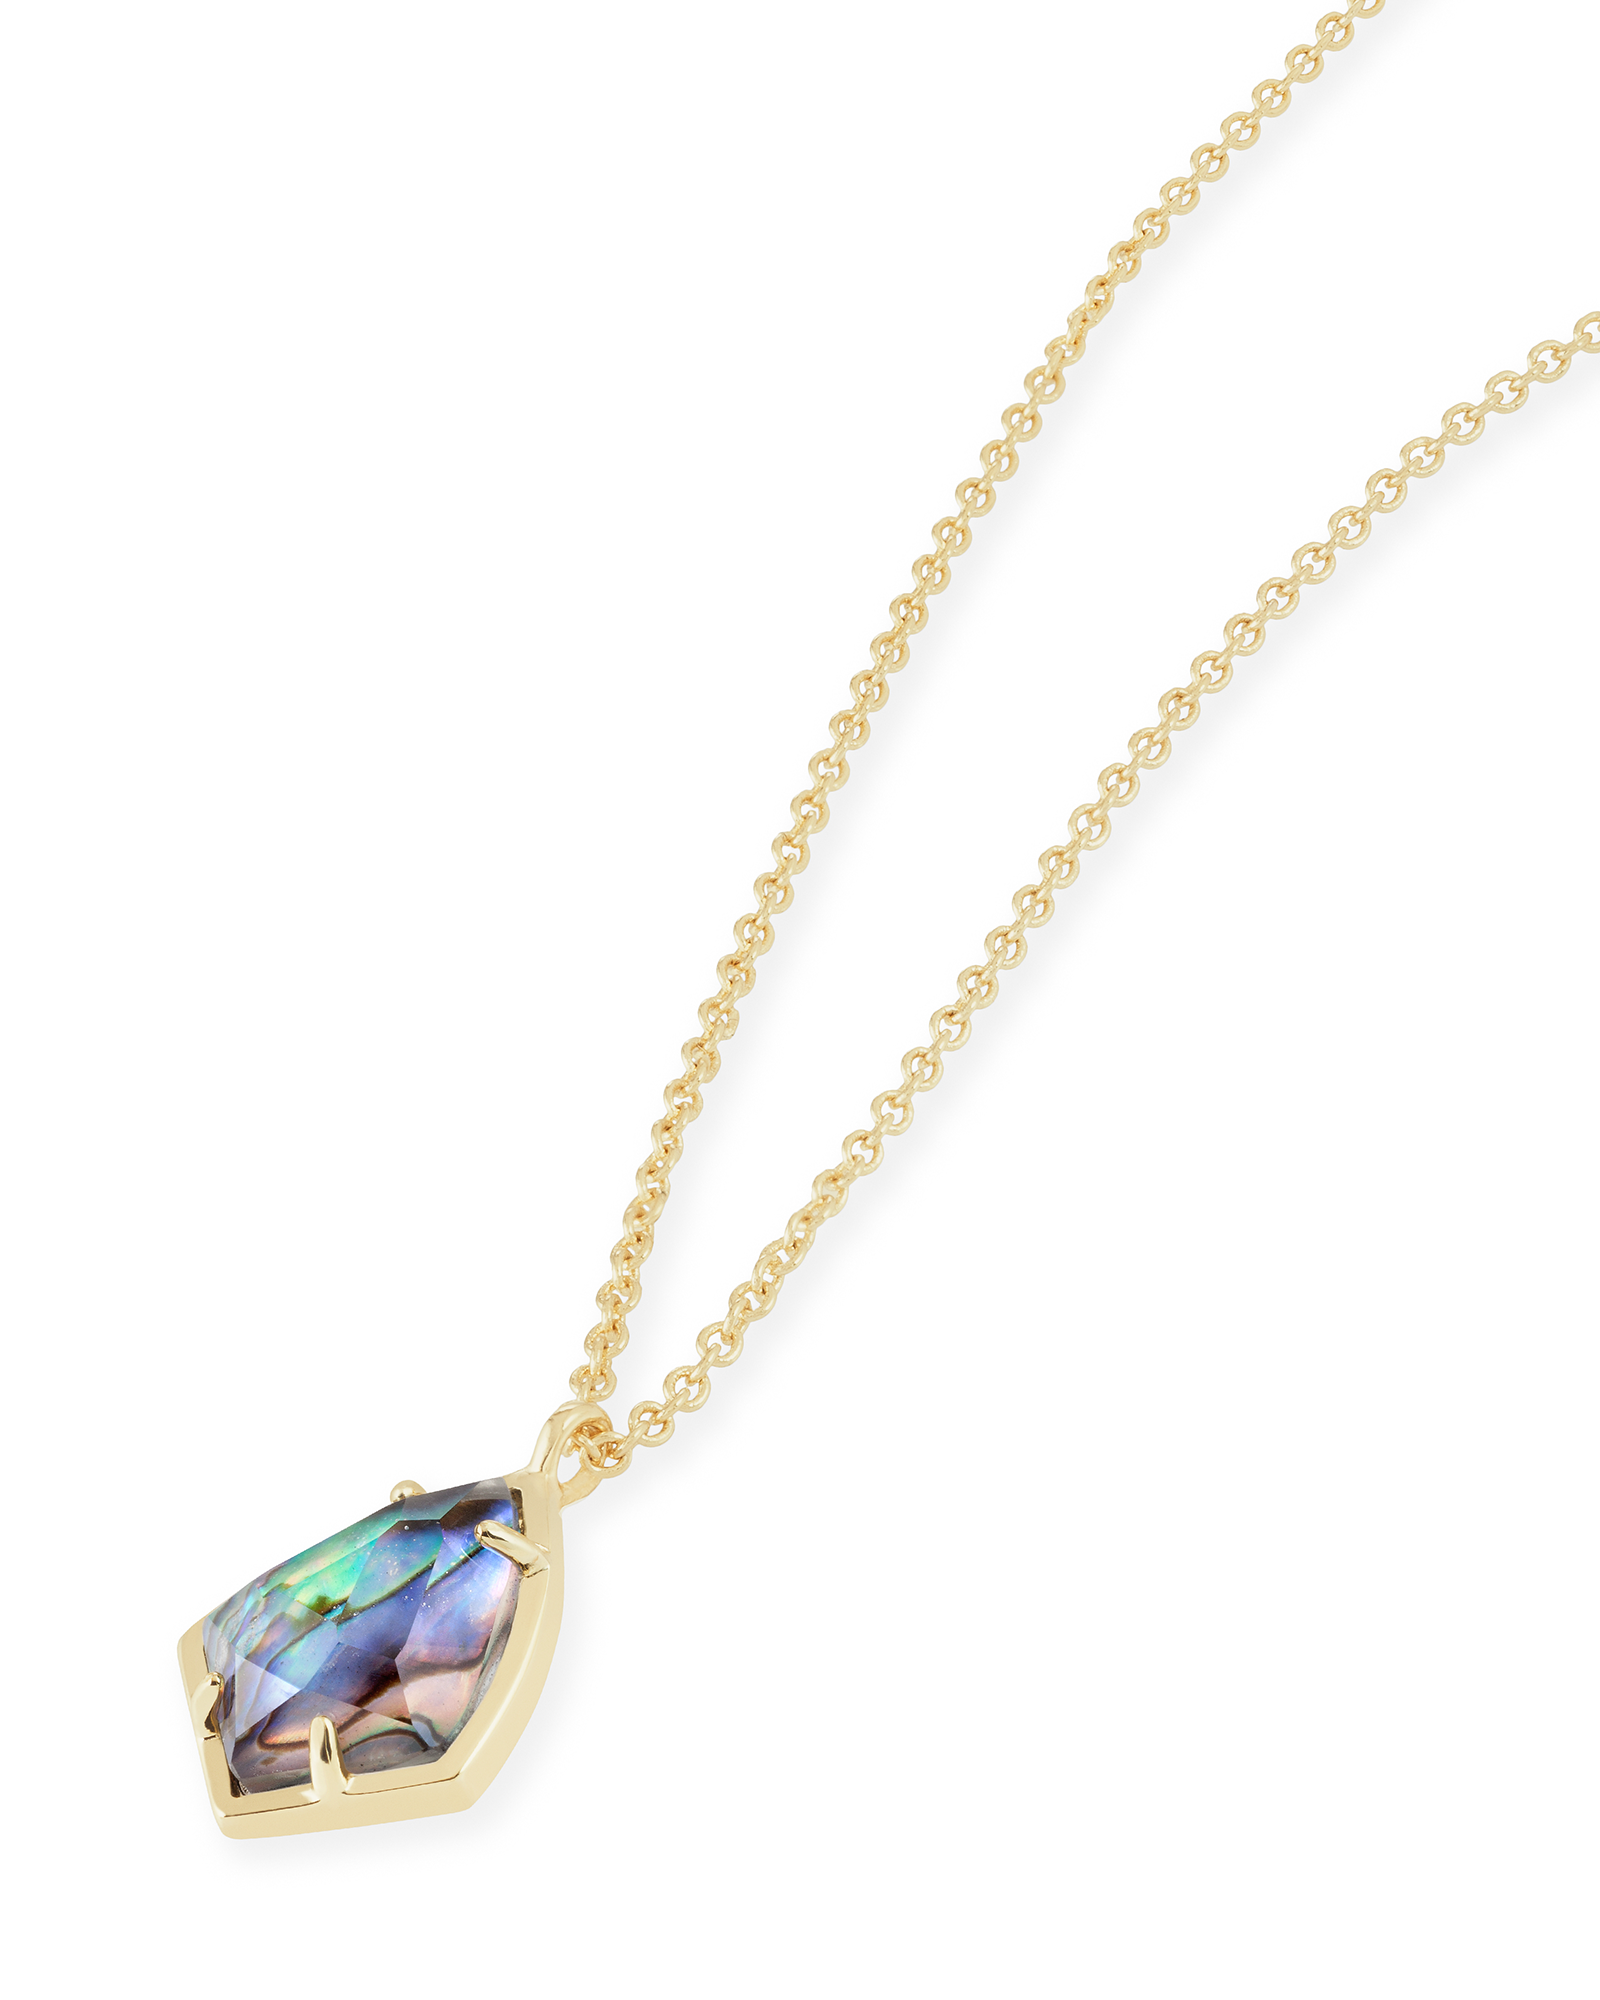 For the timeless beauty who loves an understated shine, the Cory Necklace in Abalone Shell is a delicate accessory that elevates the everyday.